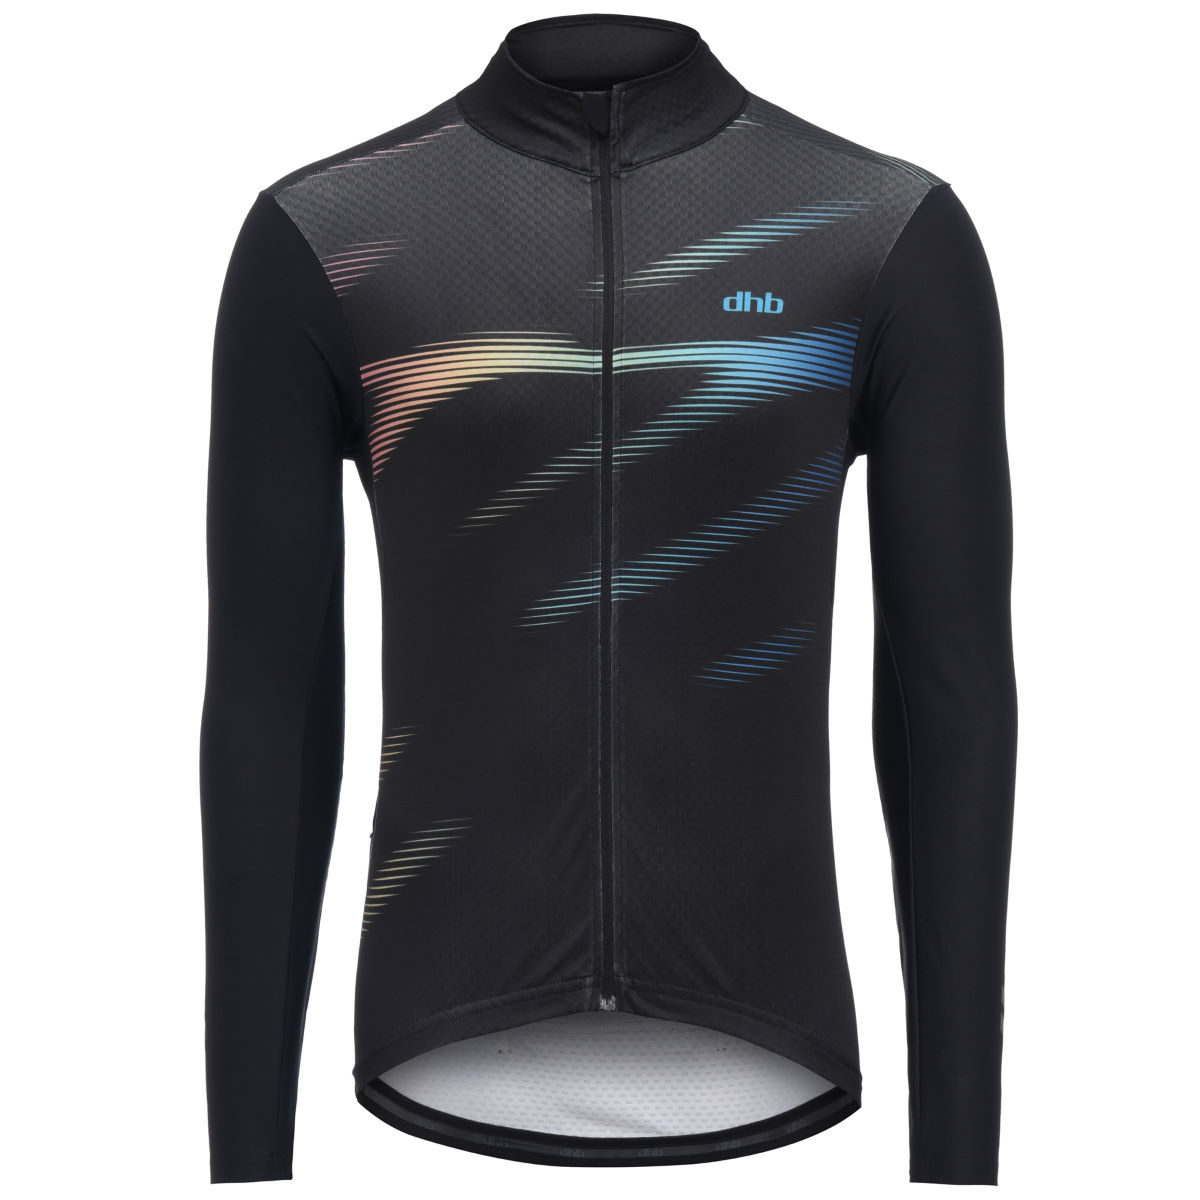 dhb Aeron Speed Equinox Jersey - Northern Lights - Maillots